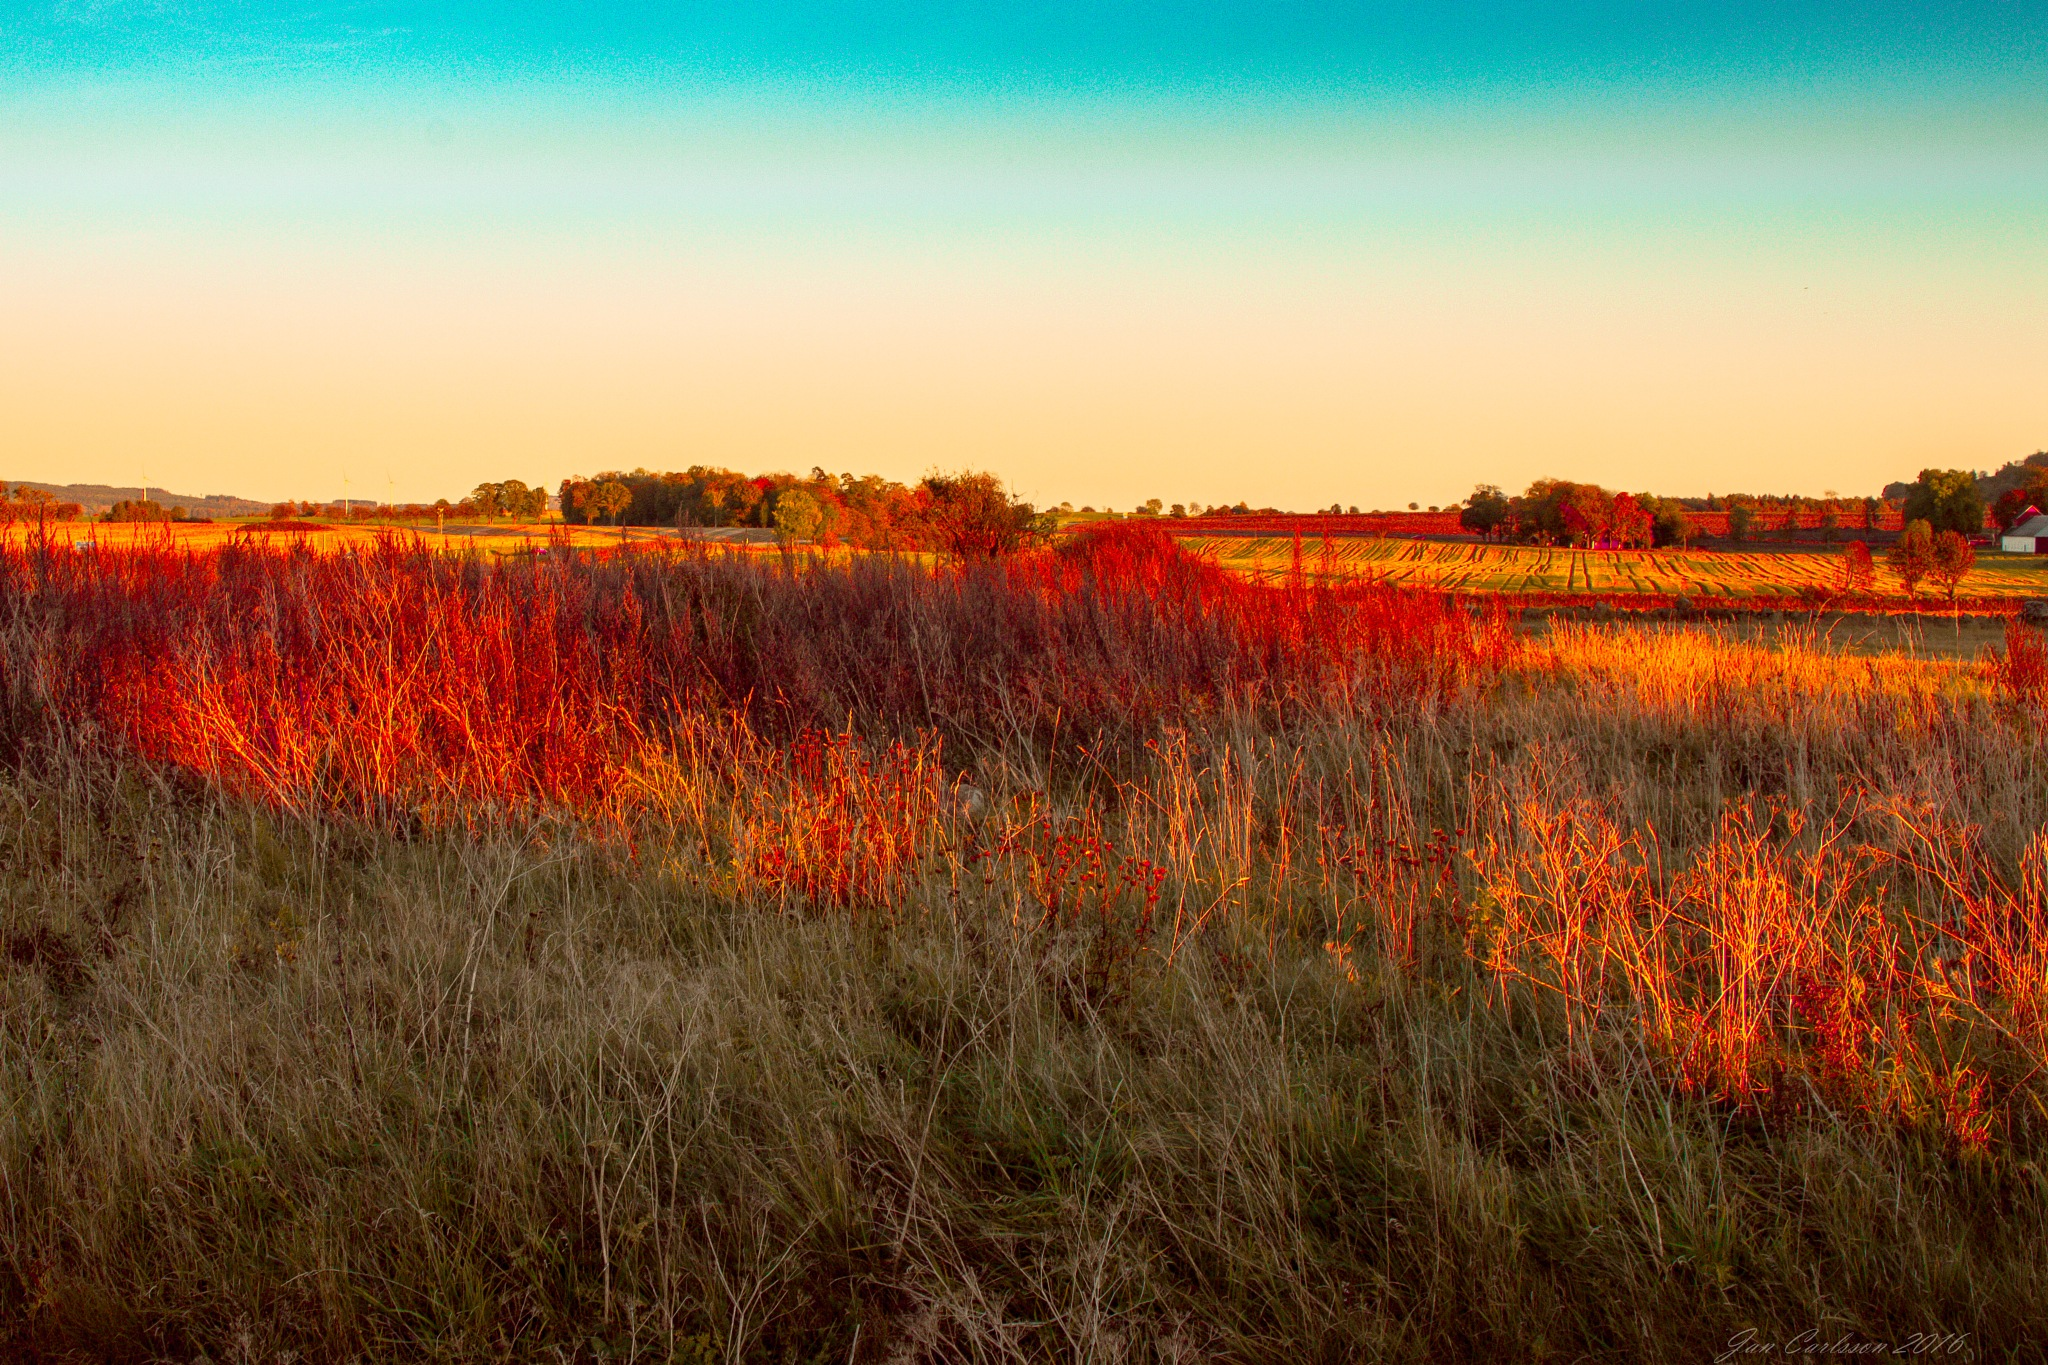 Just Before Sunset in October by carljan w carlsson